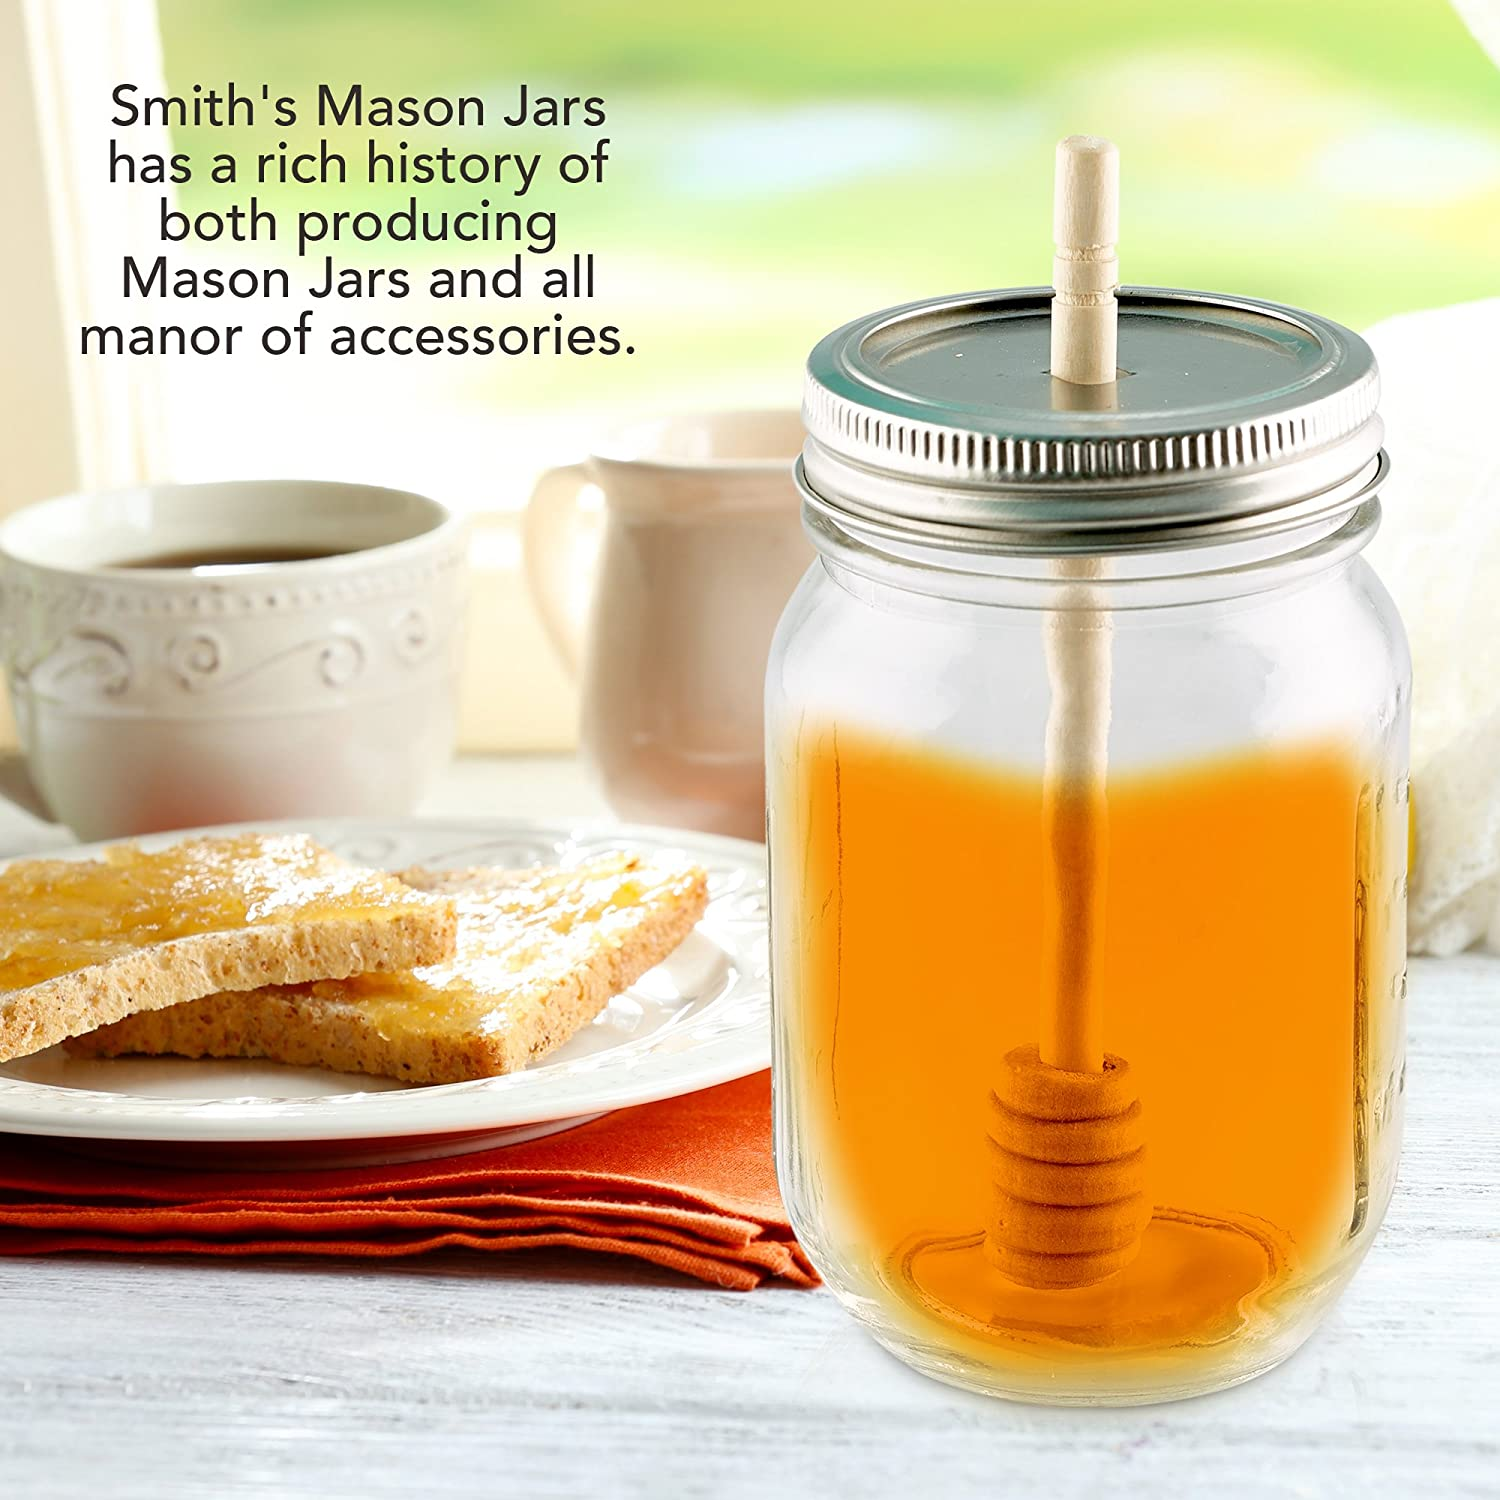 2 x Smith's Kilner/Mason Jars Bamboo Honey Dipper with Lid (Jar not Included) Smiths Mason Jars